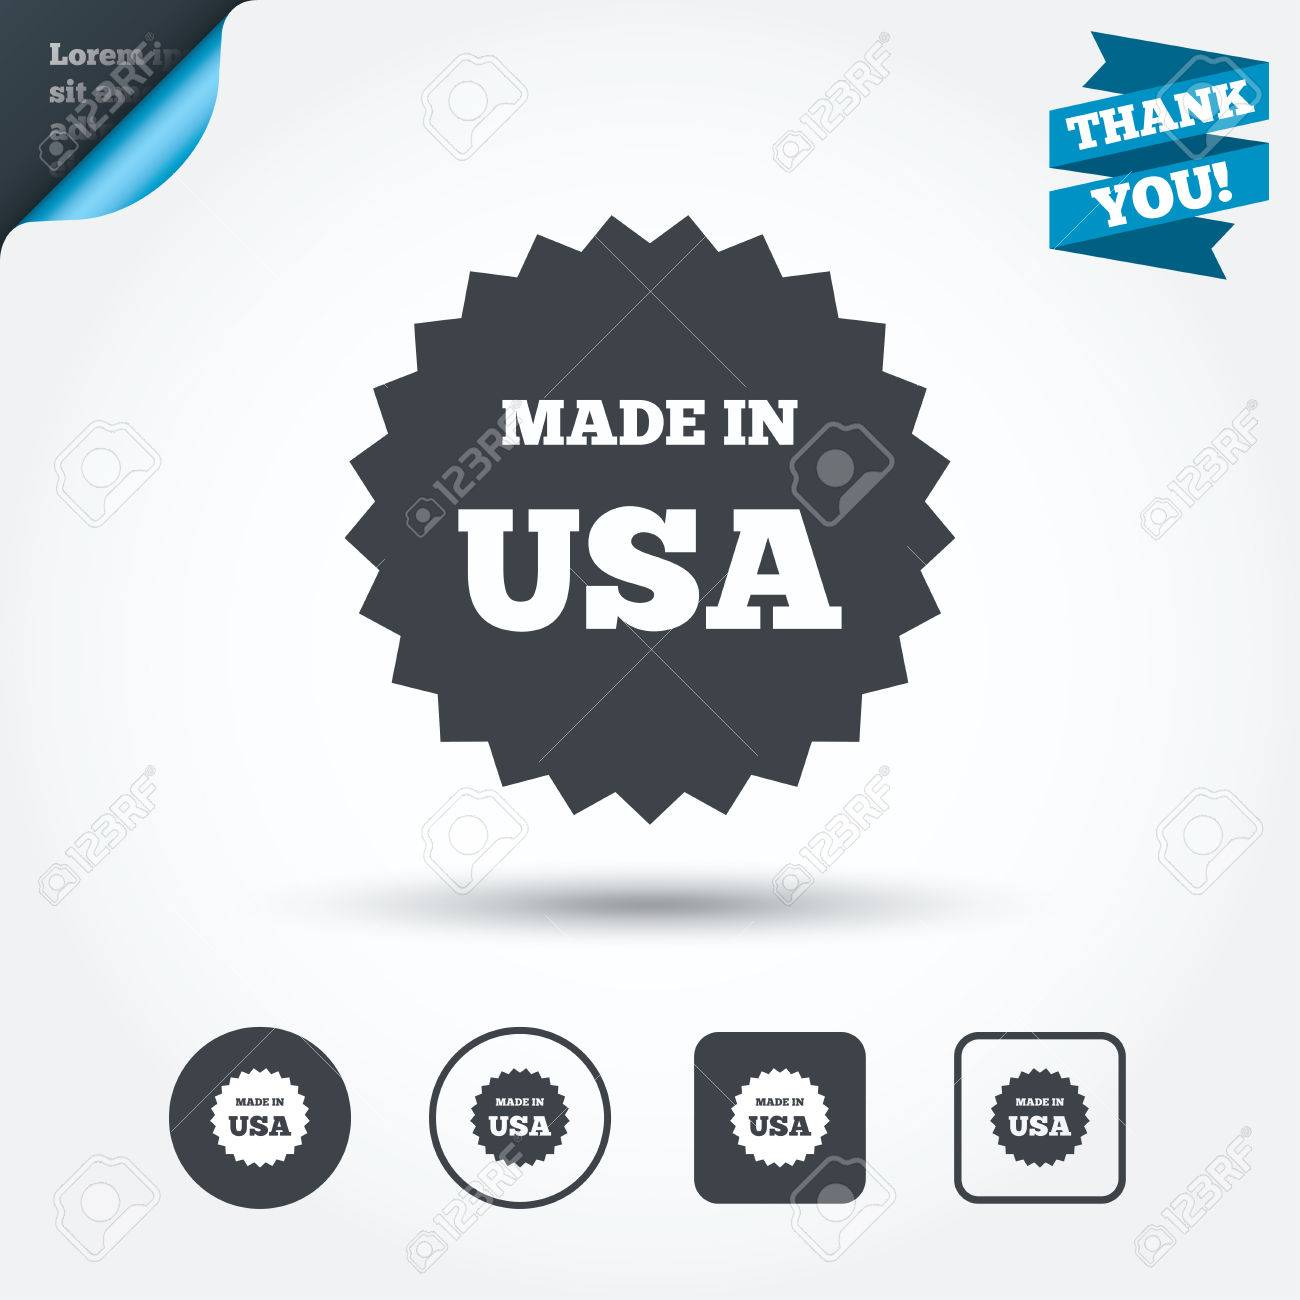 Made in the usa icon export production symbol product created made in the usa icon export production symbol product created in america sign buycottarizona